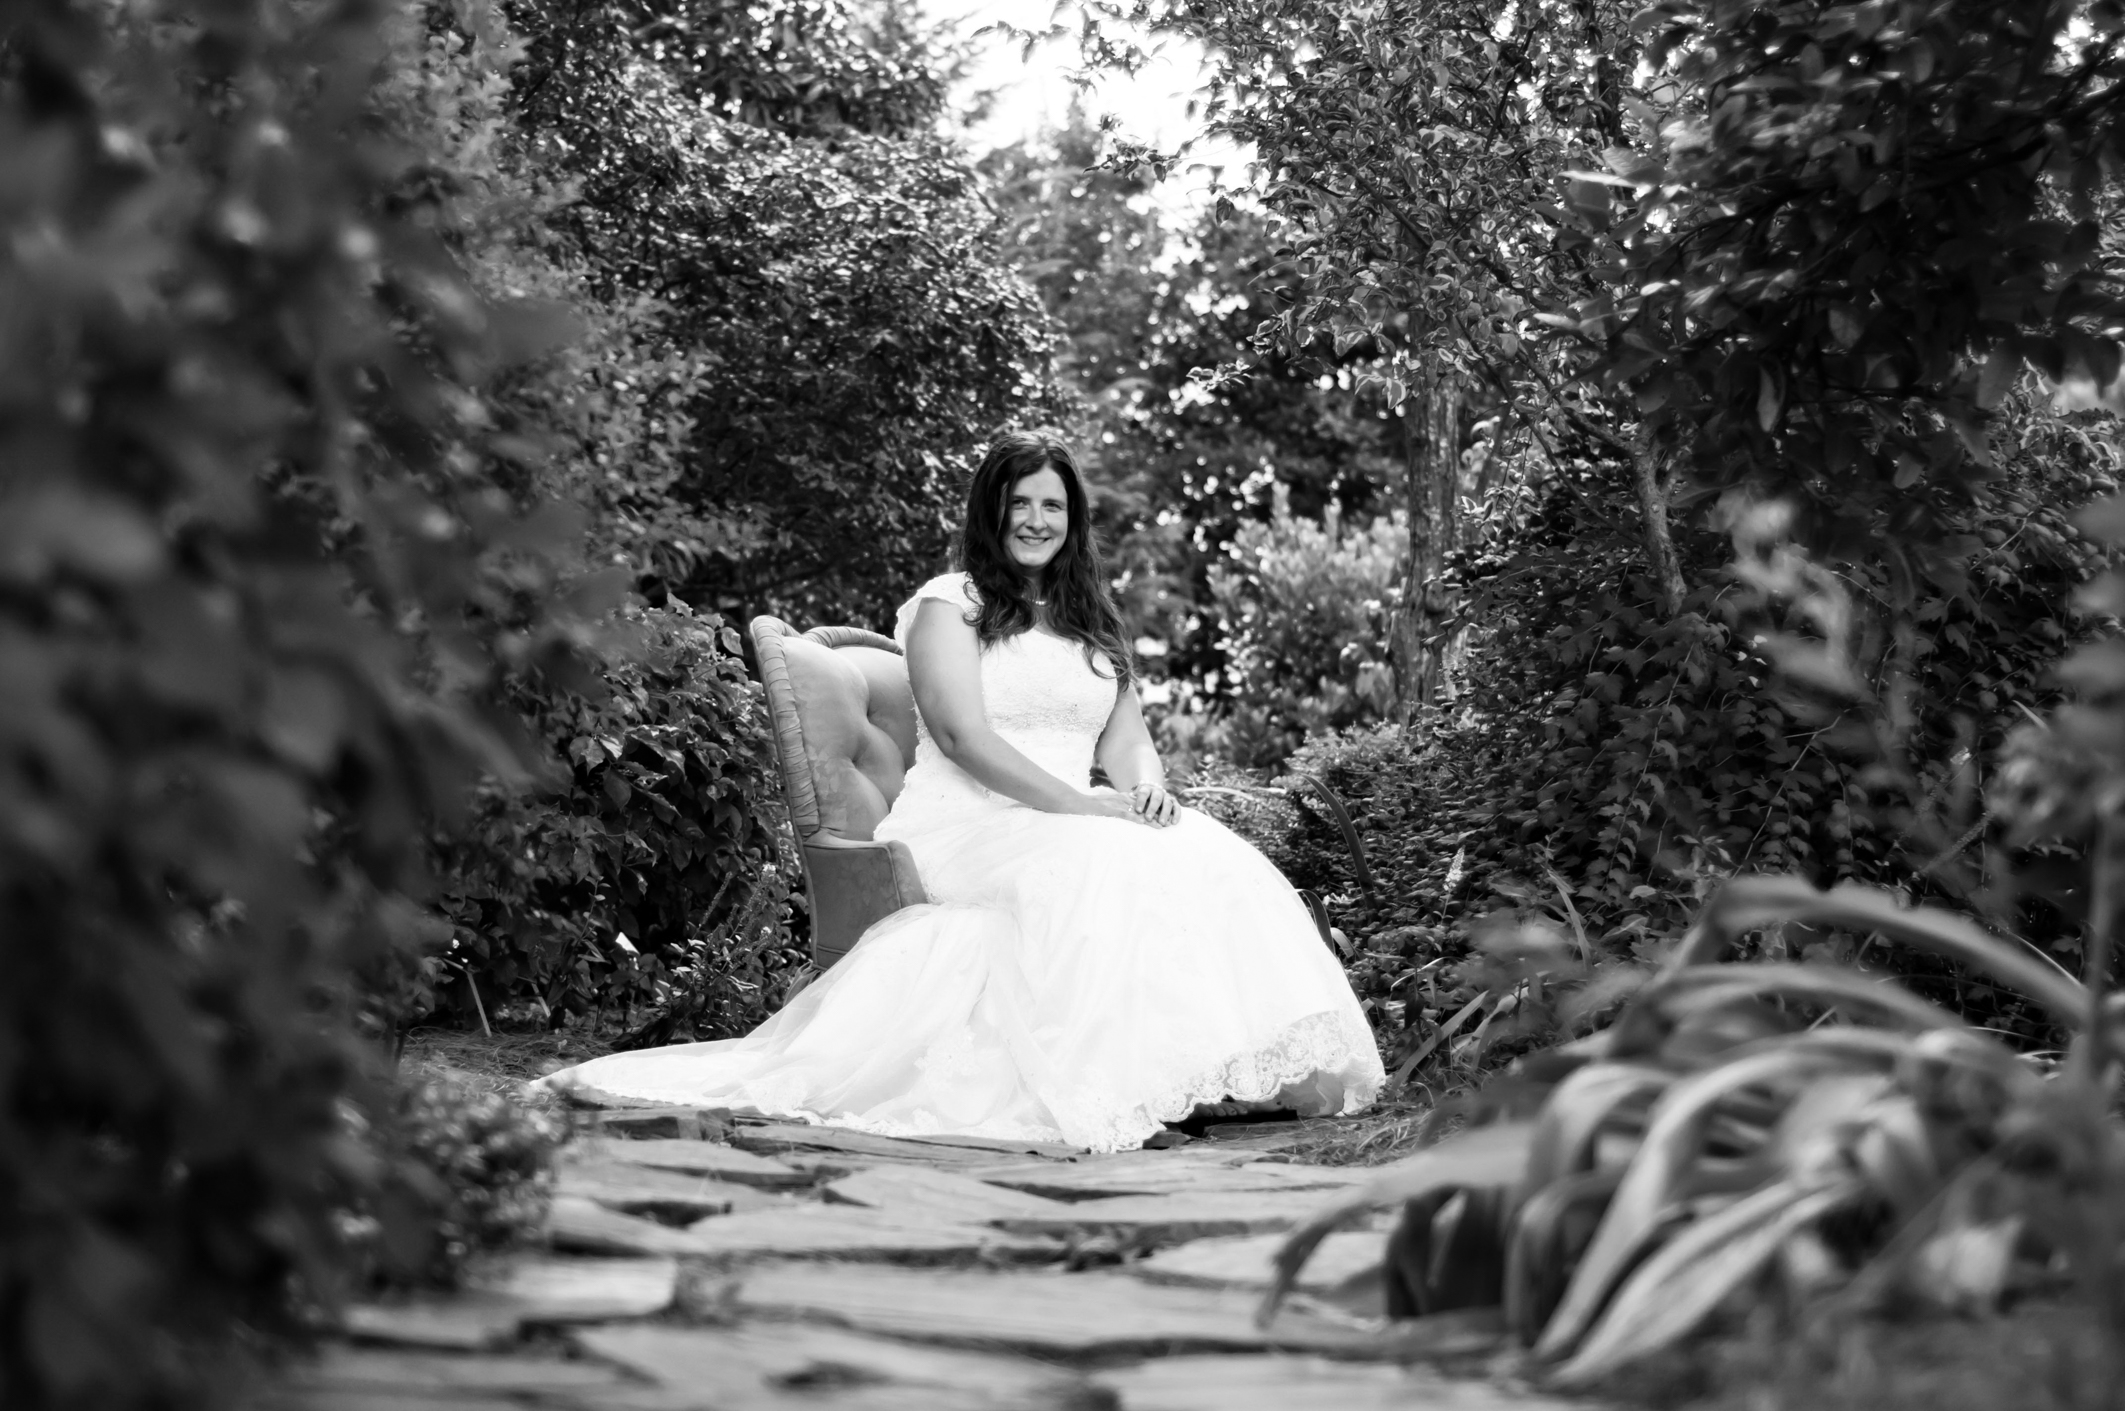 JC Raulston Arboretum Bridal Photographer Raleigh, NC